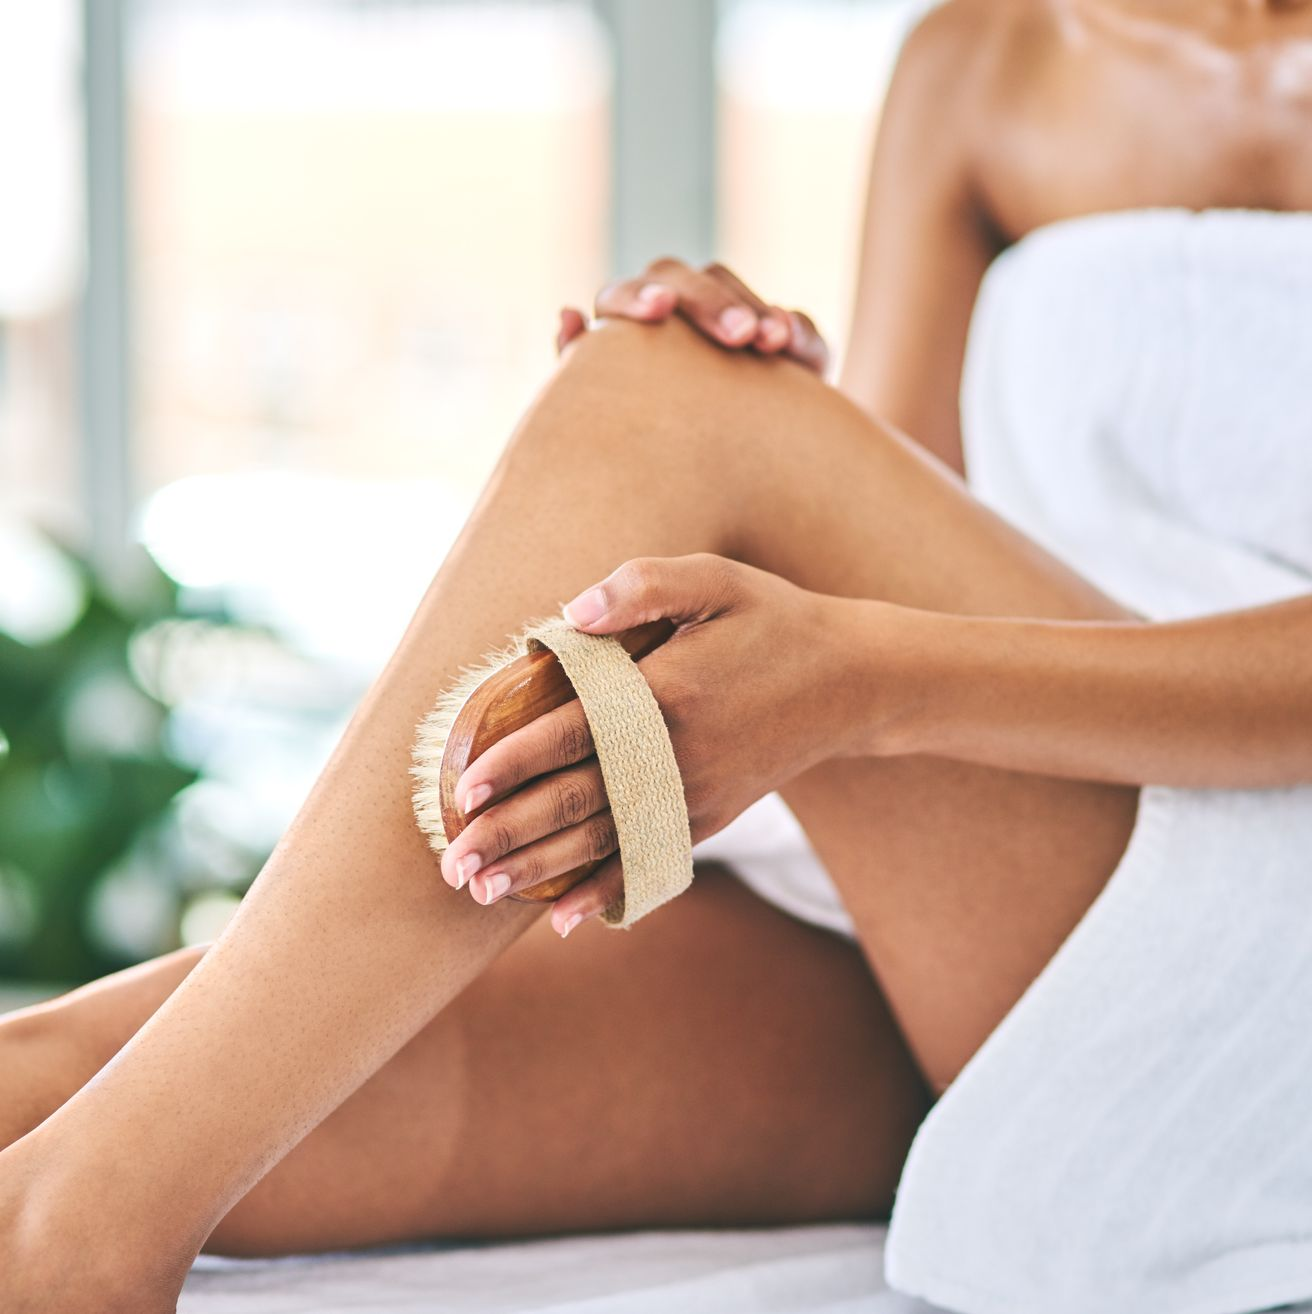 Dry Brushing for Cellulite: What to Know About the Benefits and Risks